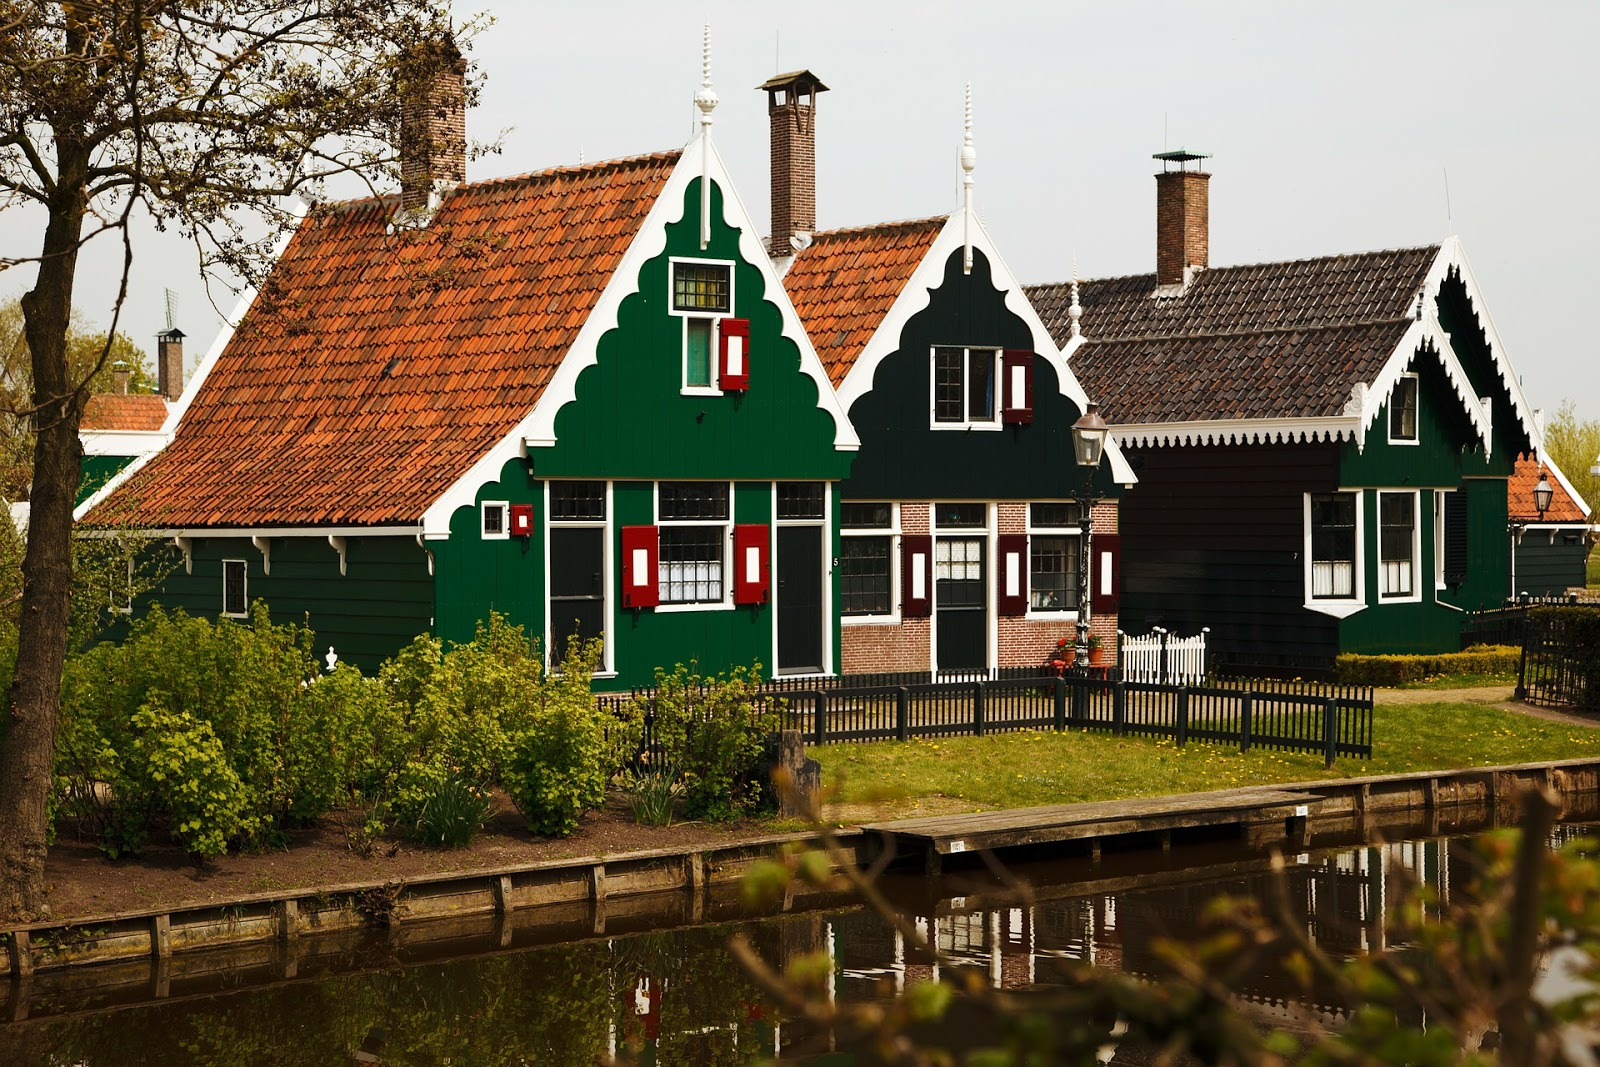 Homes designed with a Dutch architecture style